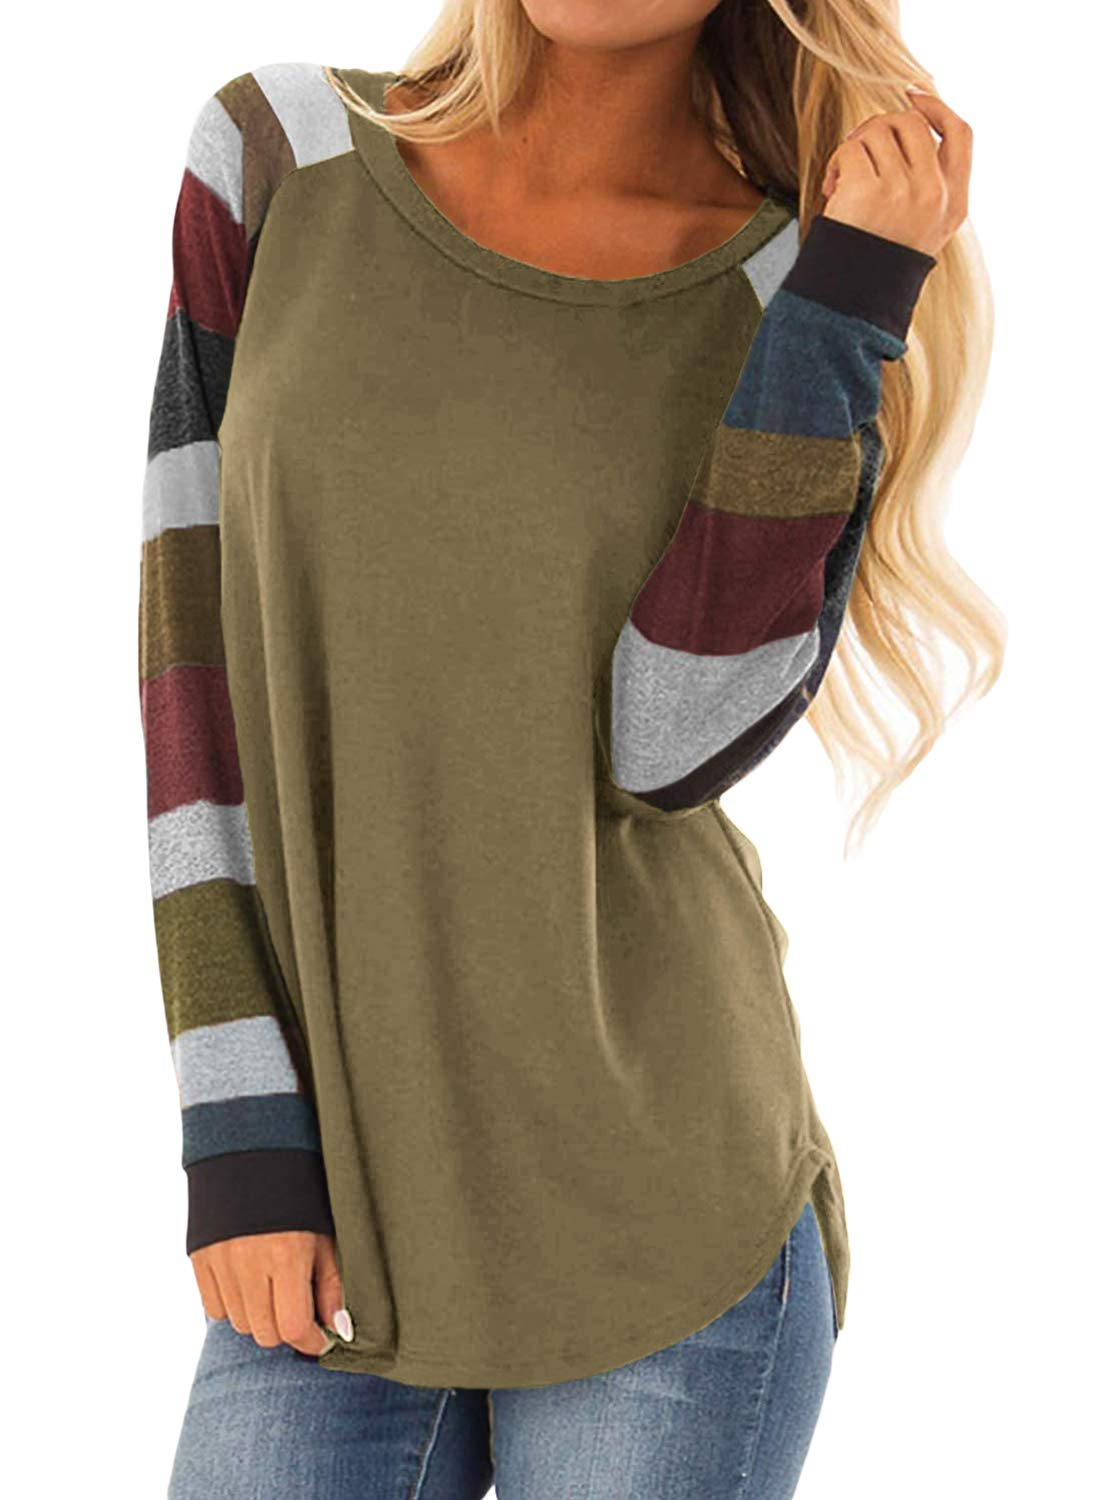 BLENCOT Womens Juniors Cute Contrast Color Long Sleeve Crewneck Tunic Tops Blouse and Shirts Coffee Small